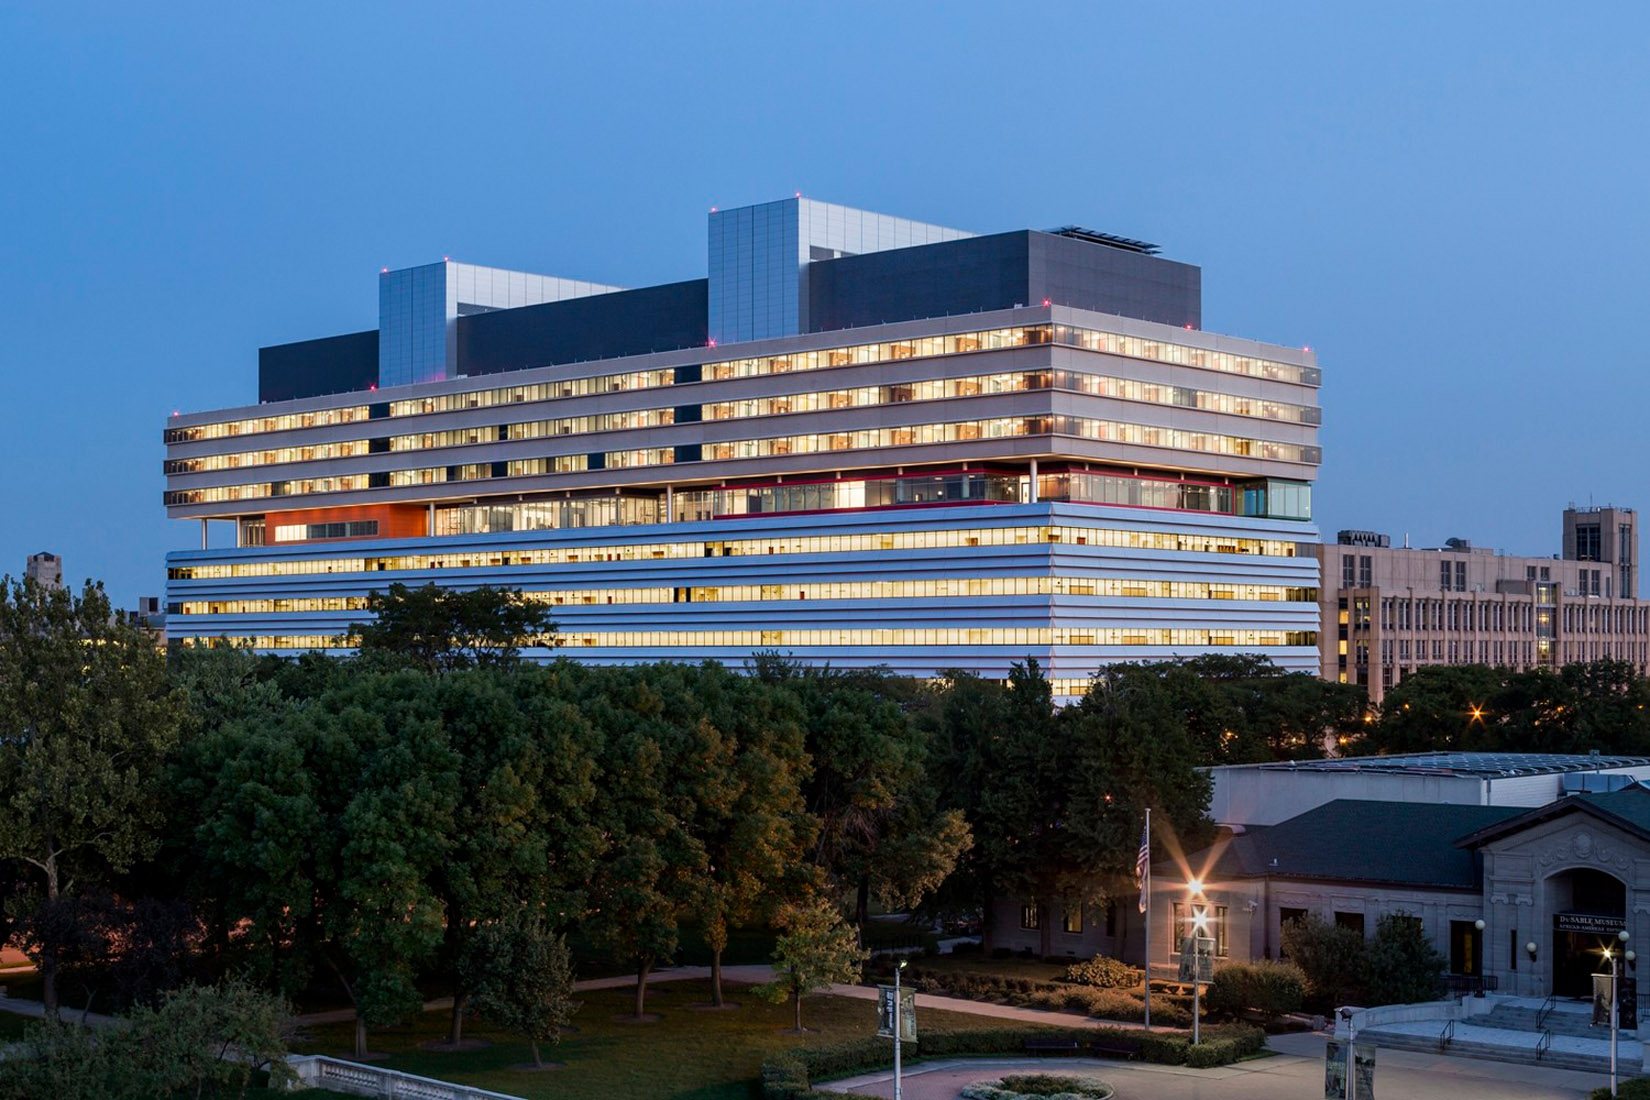 University of Chicago Medical Center for Care and Discovery